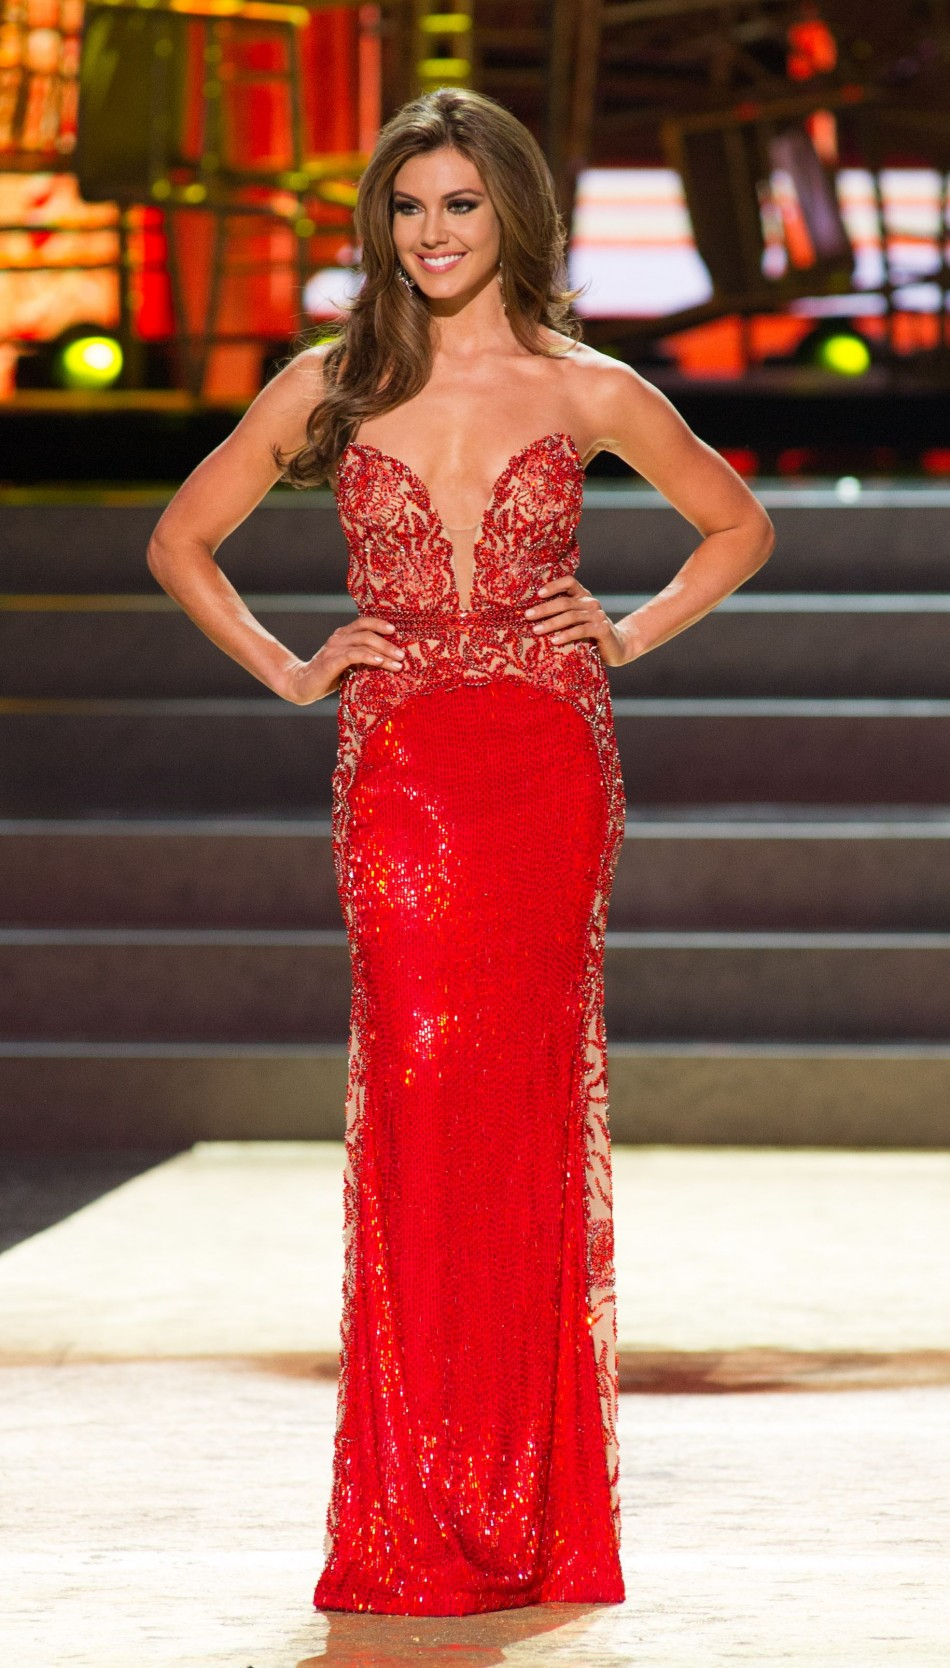 Erin Brady, Miss USA 2013. (Photo: Miss Universe L.P., LLLP)